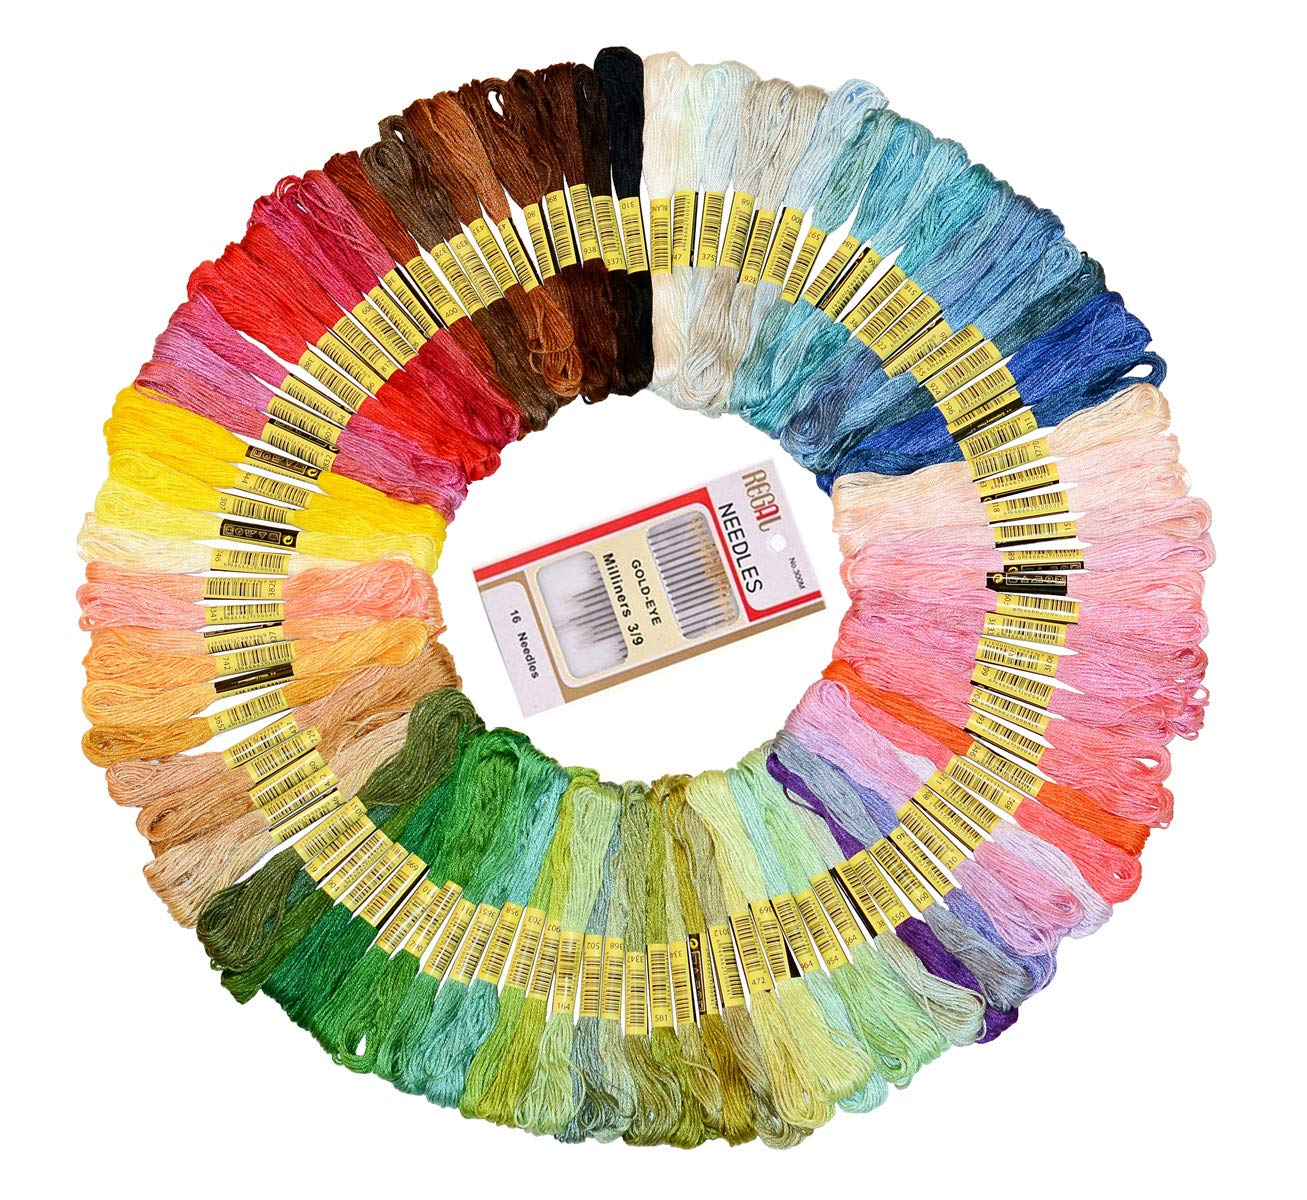 Embroidery Floss, 100 Skeins Per Pack Embroidery Cross Stitch Threads, Crafts Floss, Premium Rainbow Color Embroidery Sewing Threads, Friendship Bracelets String and 16 Pcs Embroidery Needle Brilliant store